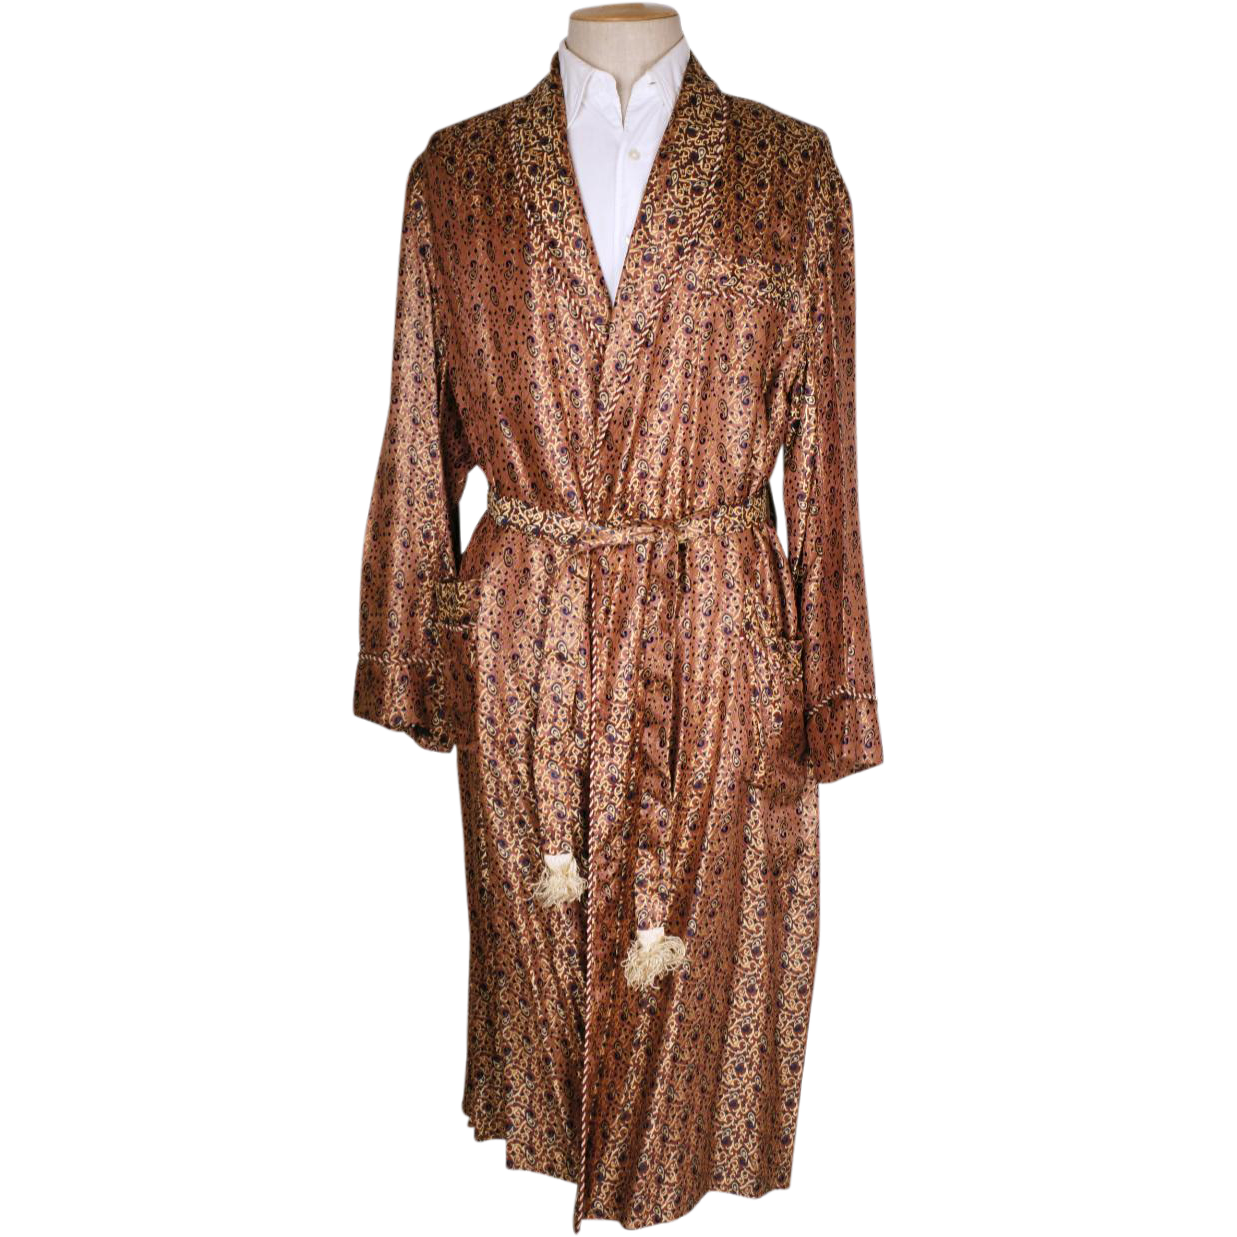 1940s Dressing Gown: Vintage 50s Mens Dressing Gown 1950s Woven Satin Brocade